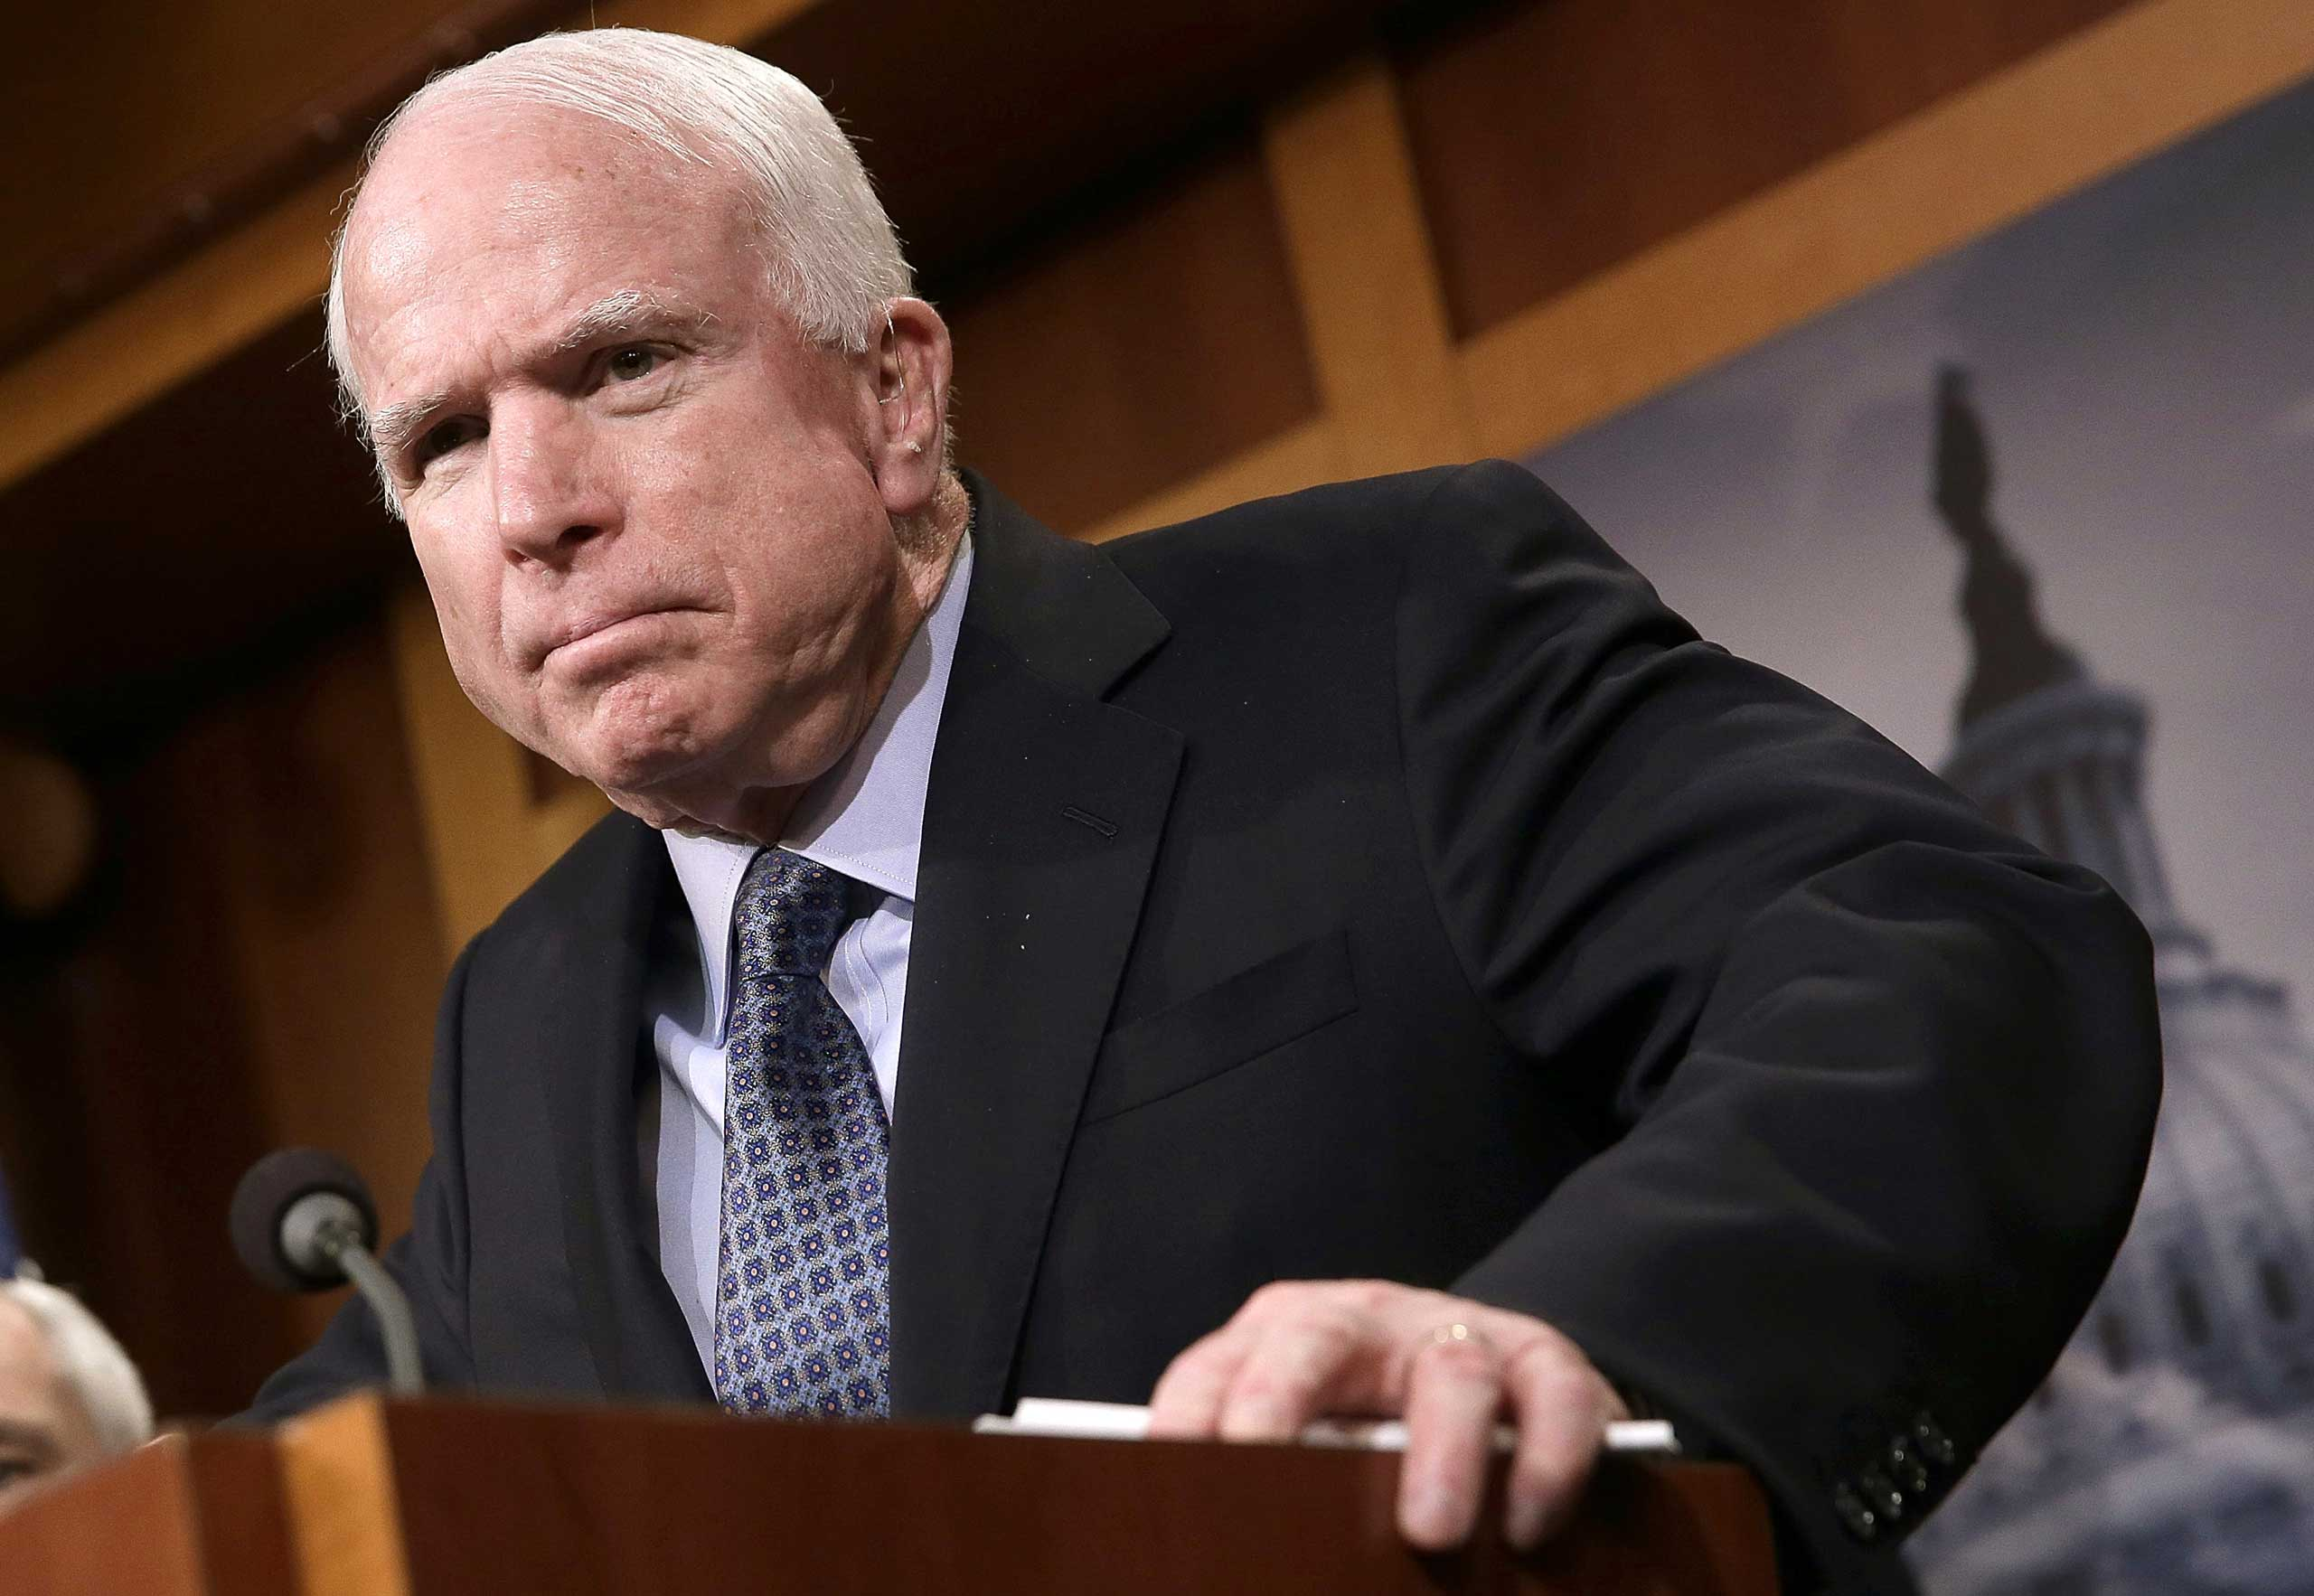 Sen. John McCain (R-AZ) speaks during a press conference at the U.S. Capitol on the conflict in Ukraine, Feb. 5, 2015 in Washington, DC.